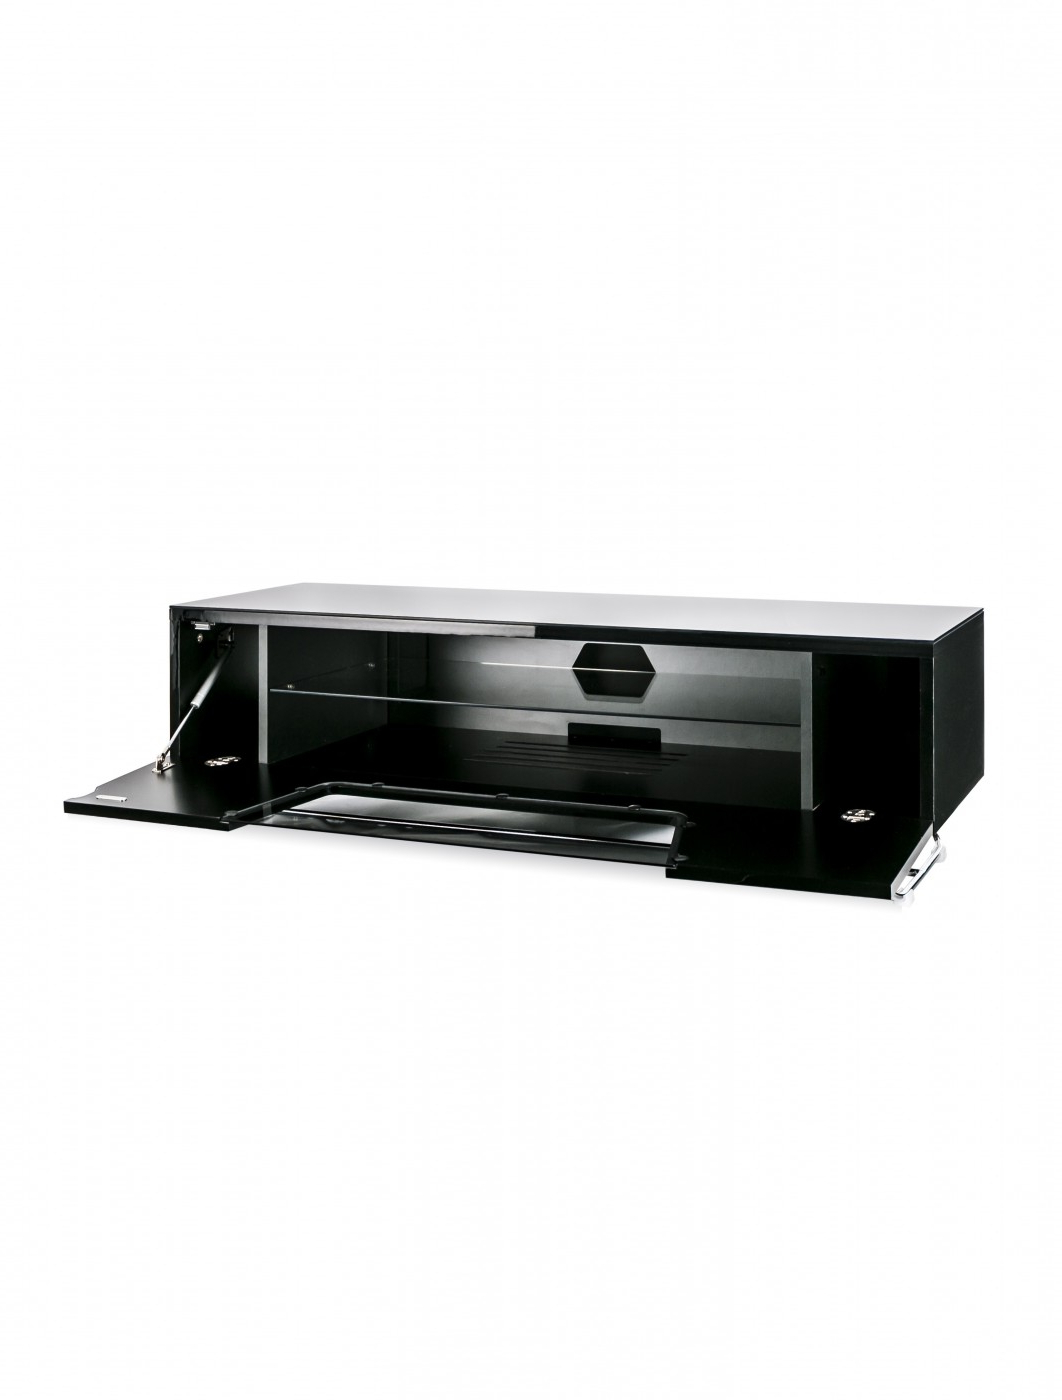 Alphason Chromium Tv Stand Cro2 1200cb Blk   121 Tv Mounts Within Chromium Tv Stands (View 17 of 20)